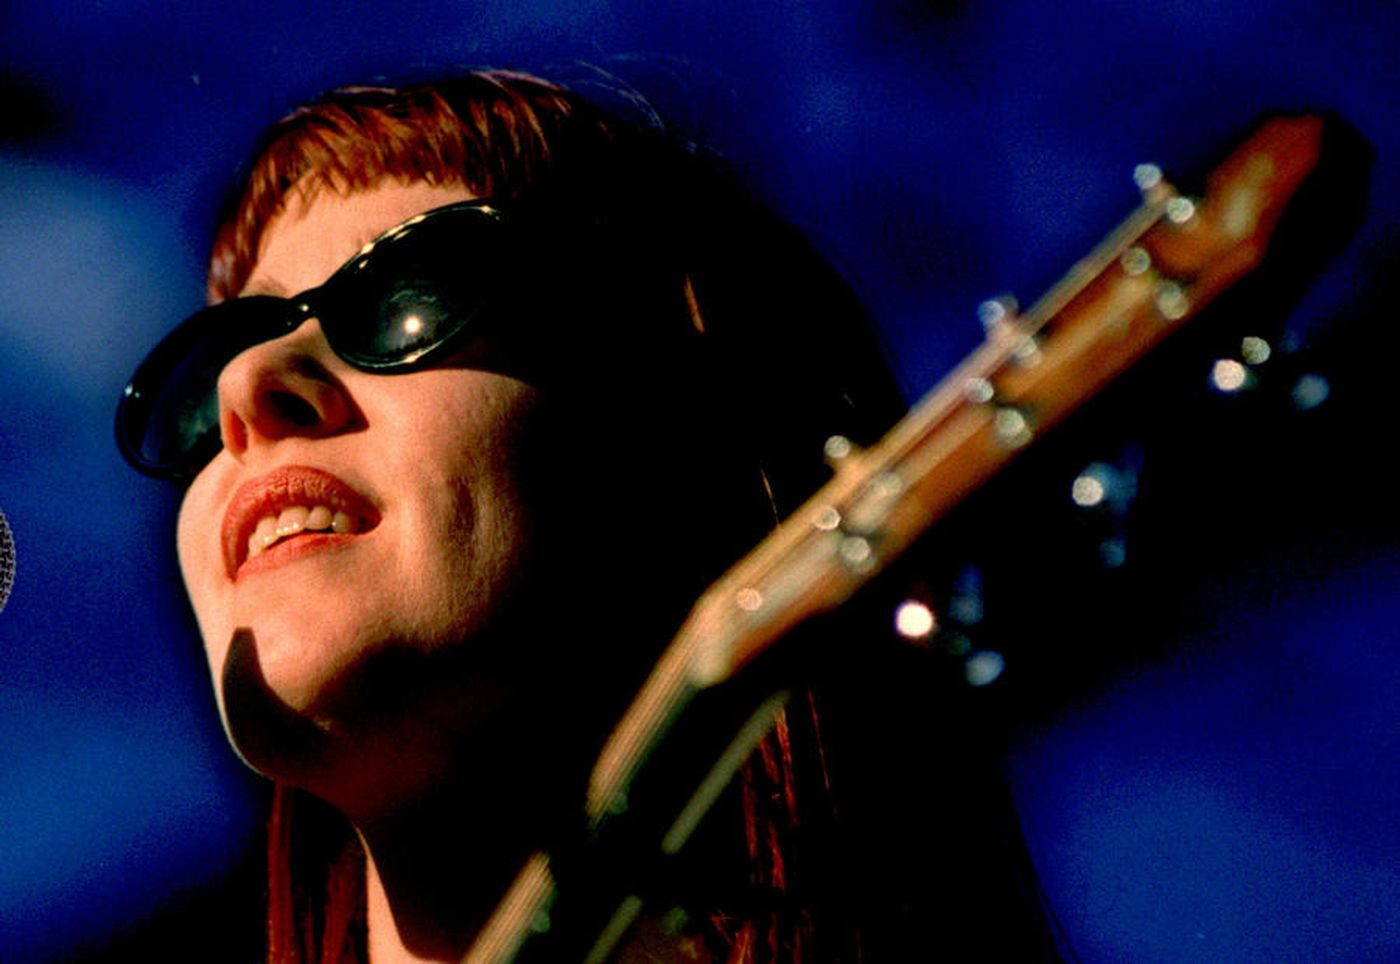 Happy birthday, Suzanne Vega! The singer-songwriter turns 59 today